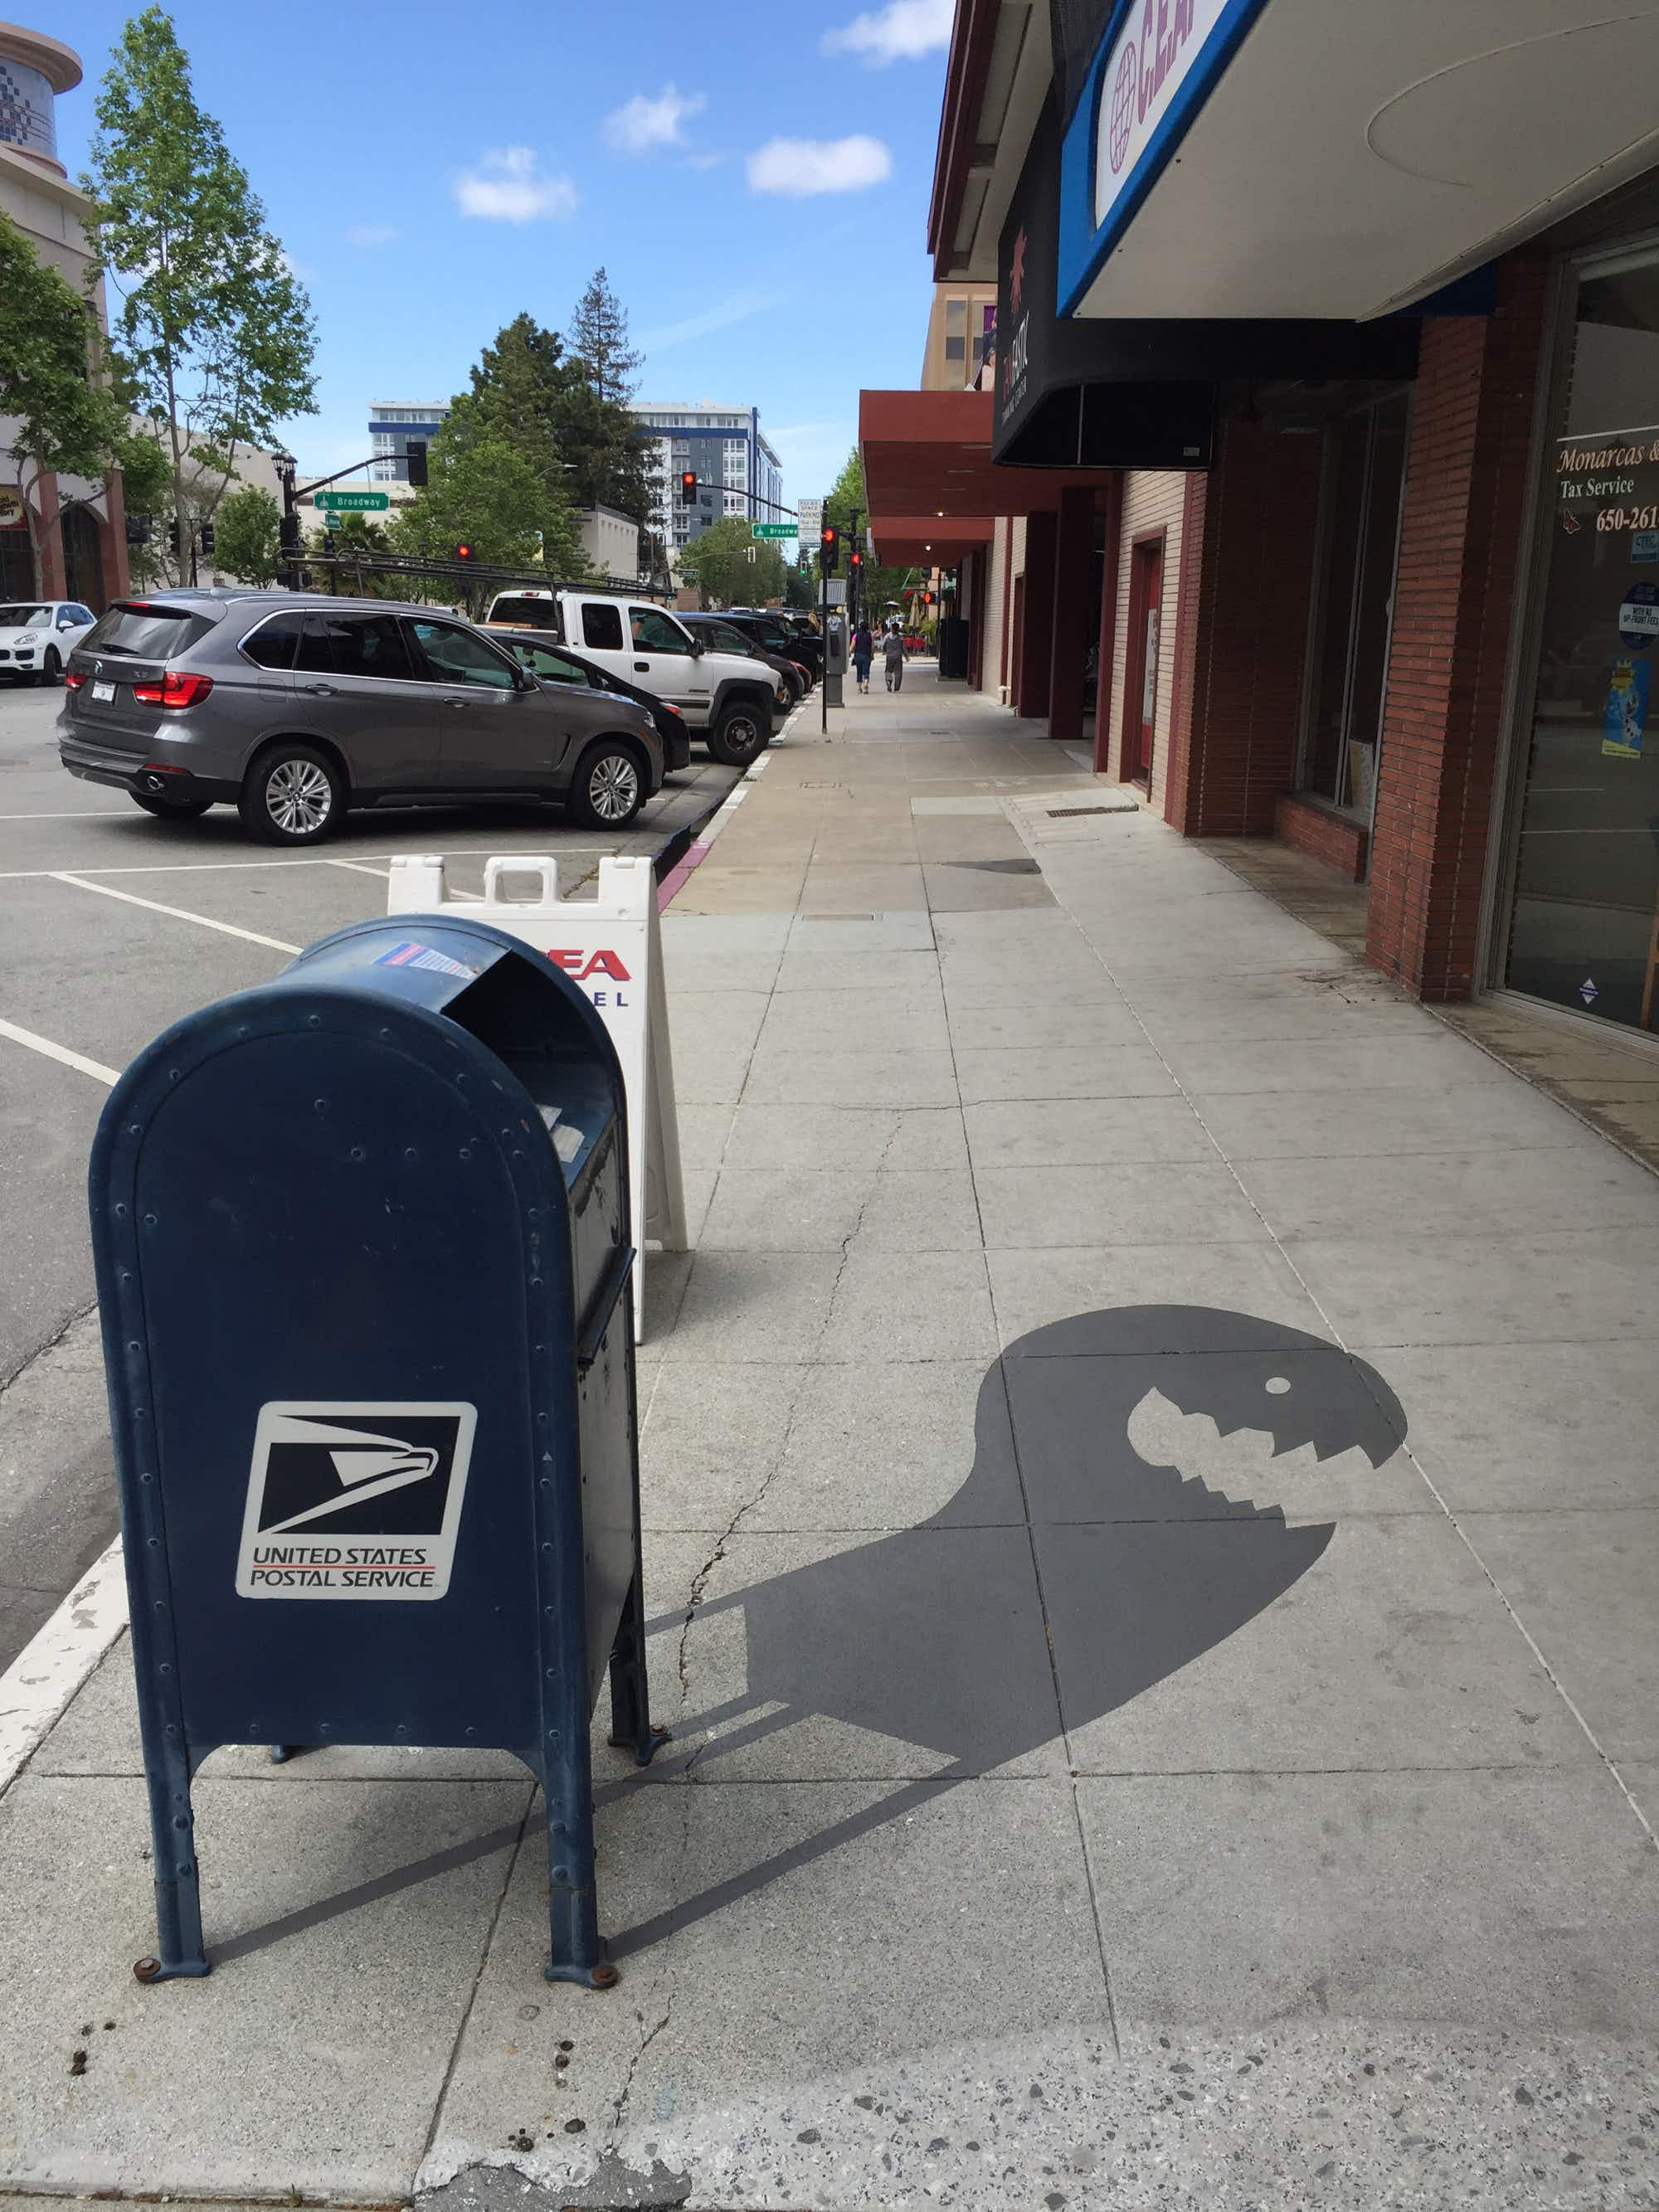 Magical shadow art is transforming everyday objects on the streets of Redwood in California